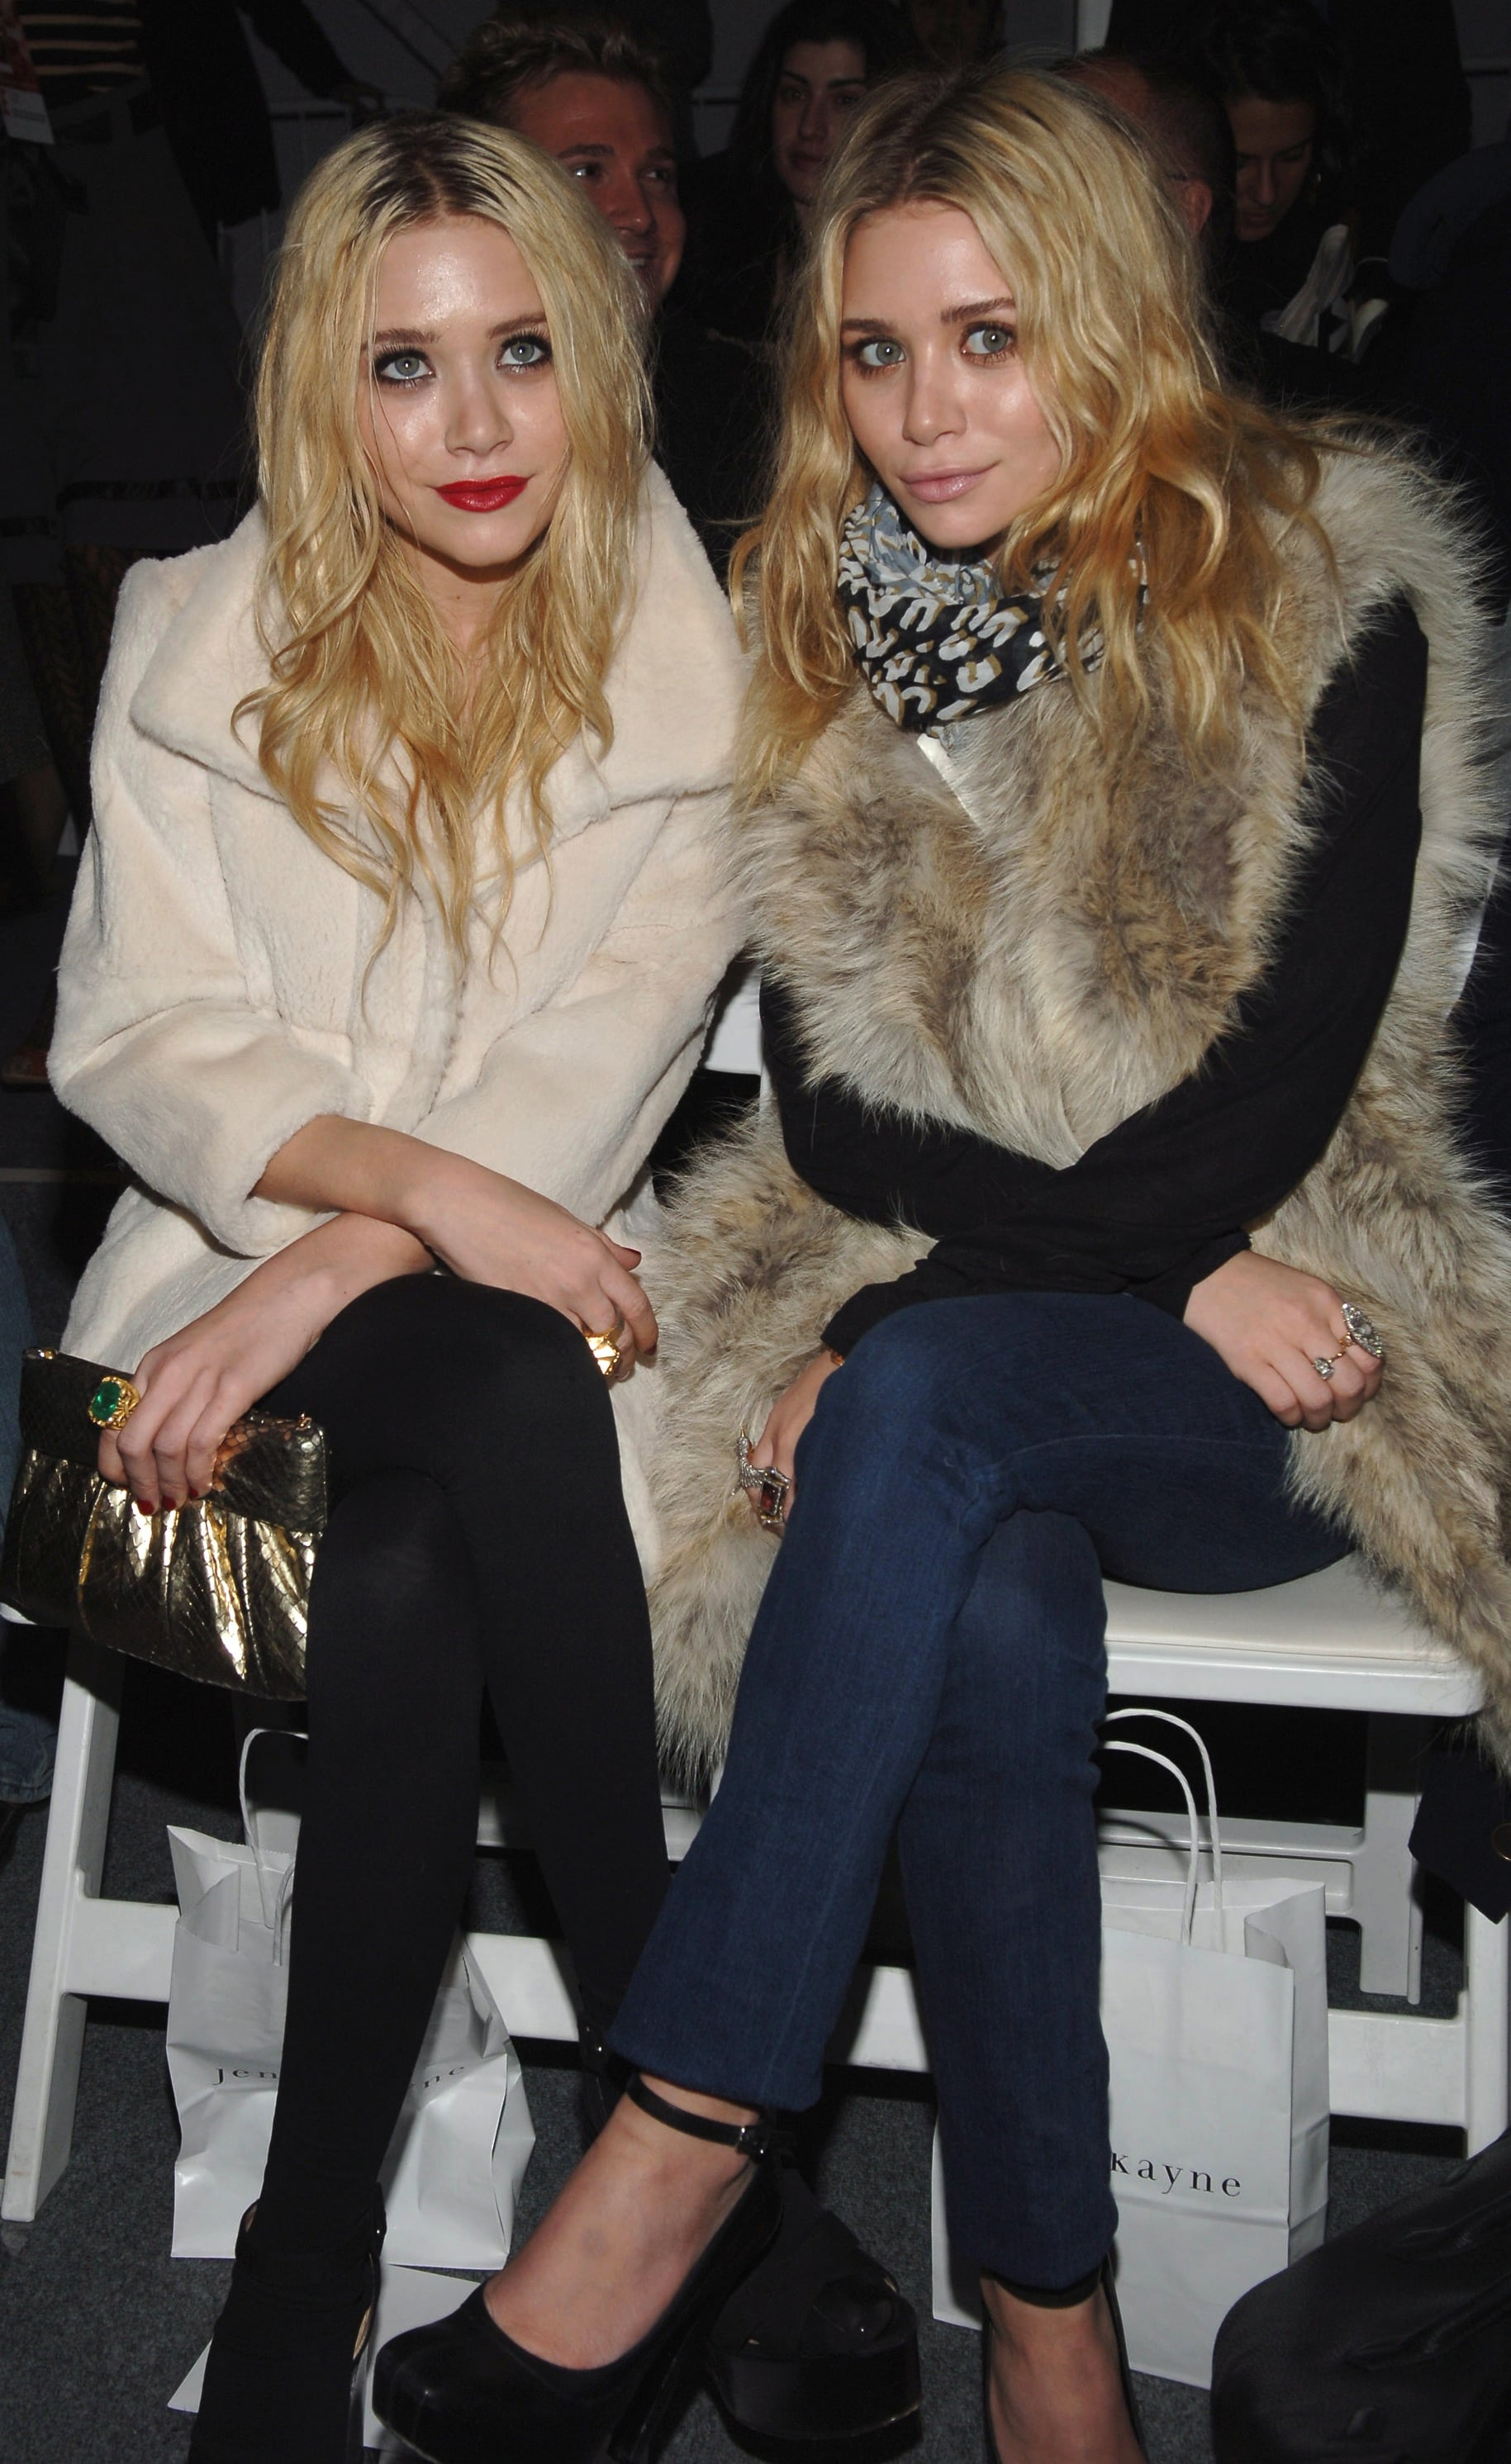 Twinning combo: The girls sat front row at the Jenni Kayne Fall 2007 show donning plush fur outerwear.  Mary-Kate styled her rich cream-colored coat with black leggings and chunky ankle boots.  Ashley showed her support for Jenni Kayne donning a lavish fur vest from her collection with true-blue denim and ankle-strap pumps.